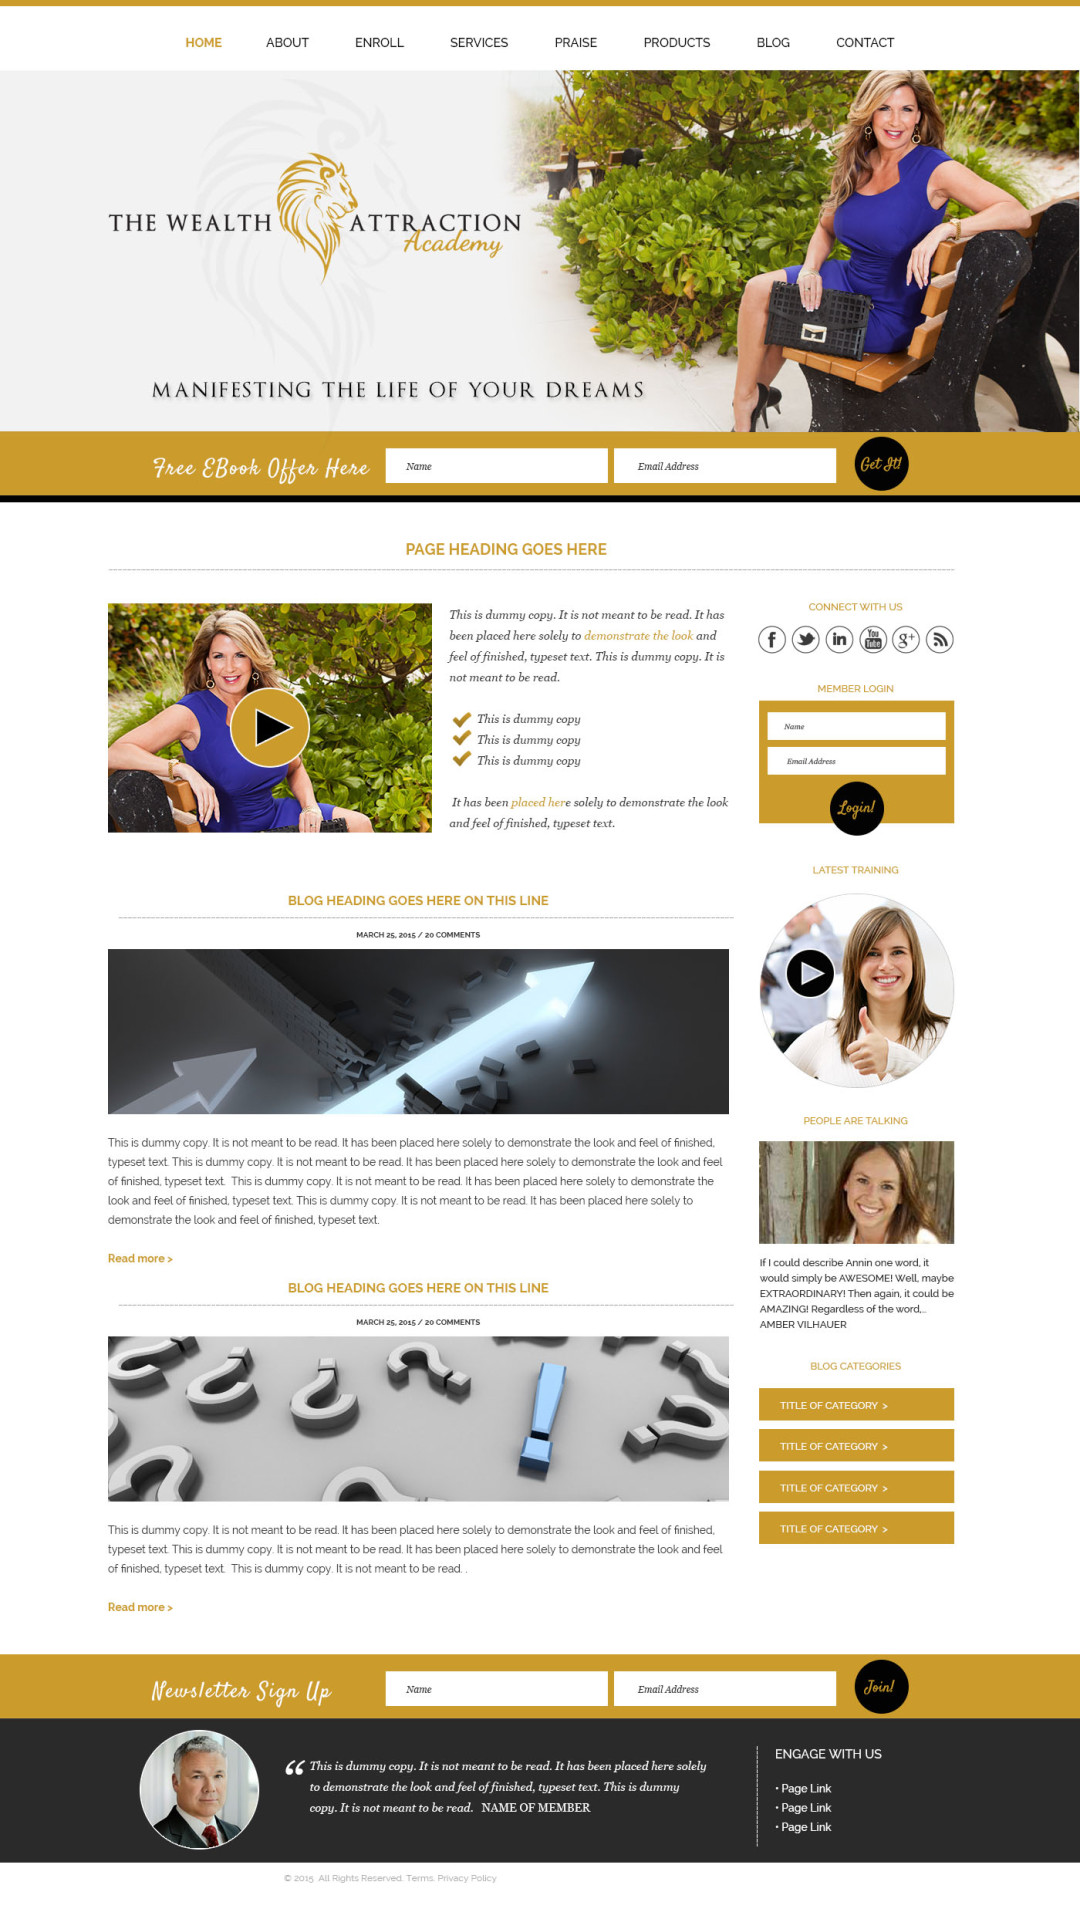 Custom Designed Wordpress Website for Ann Sanfelippo